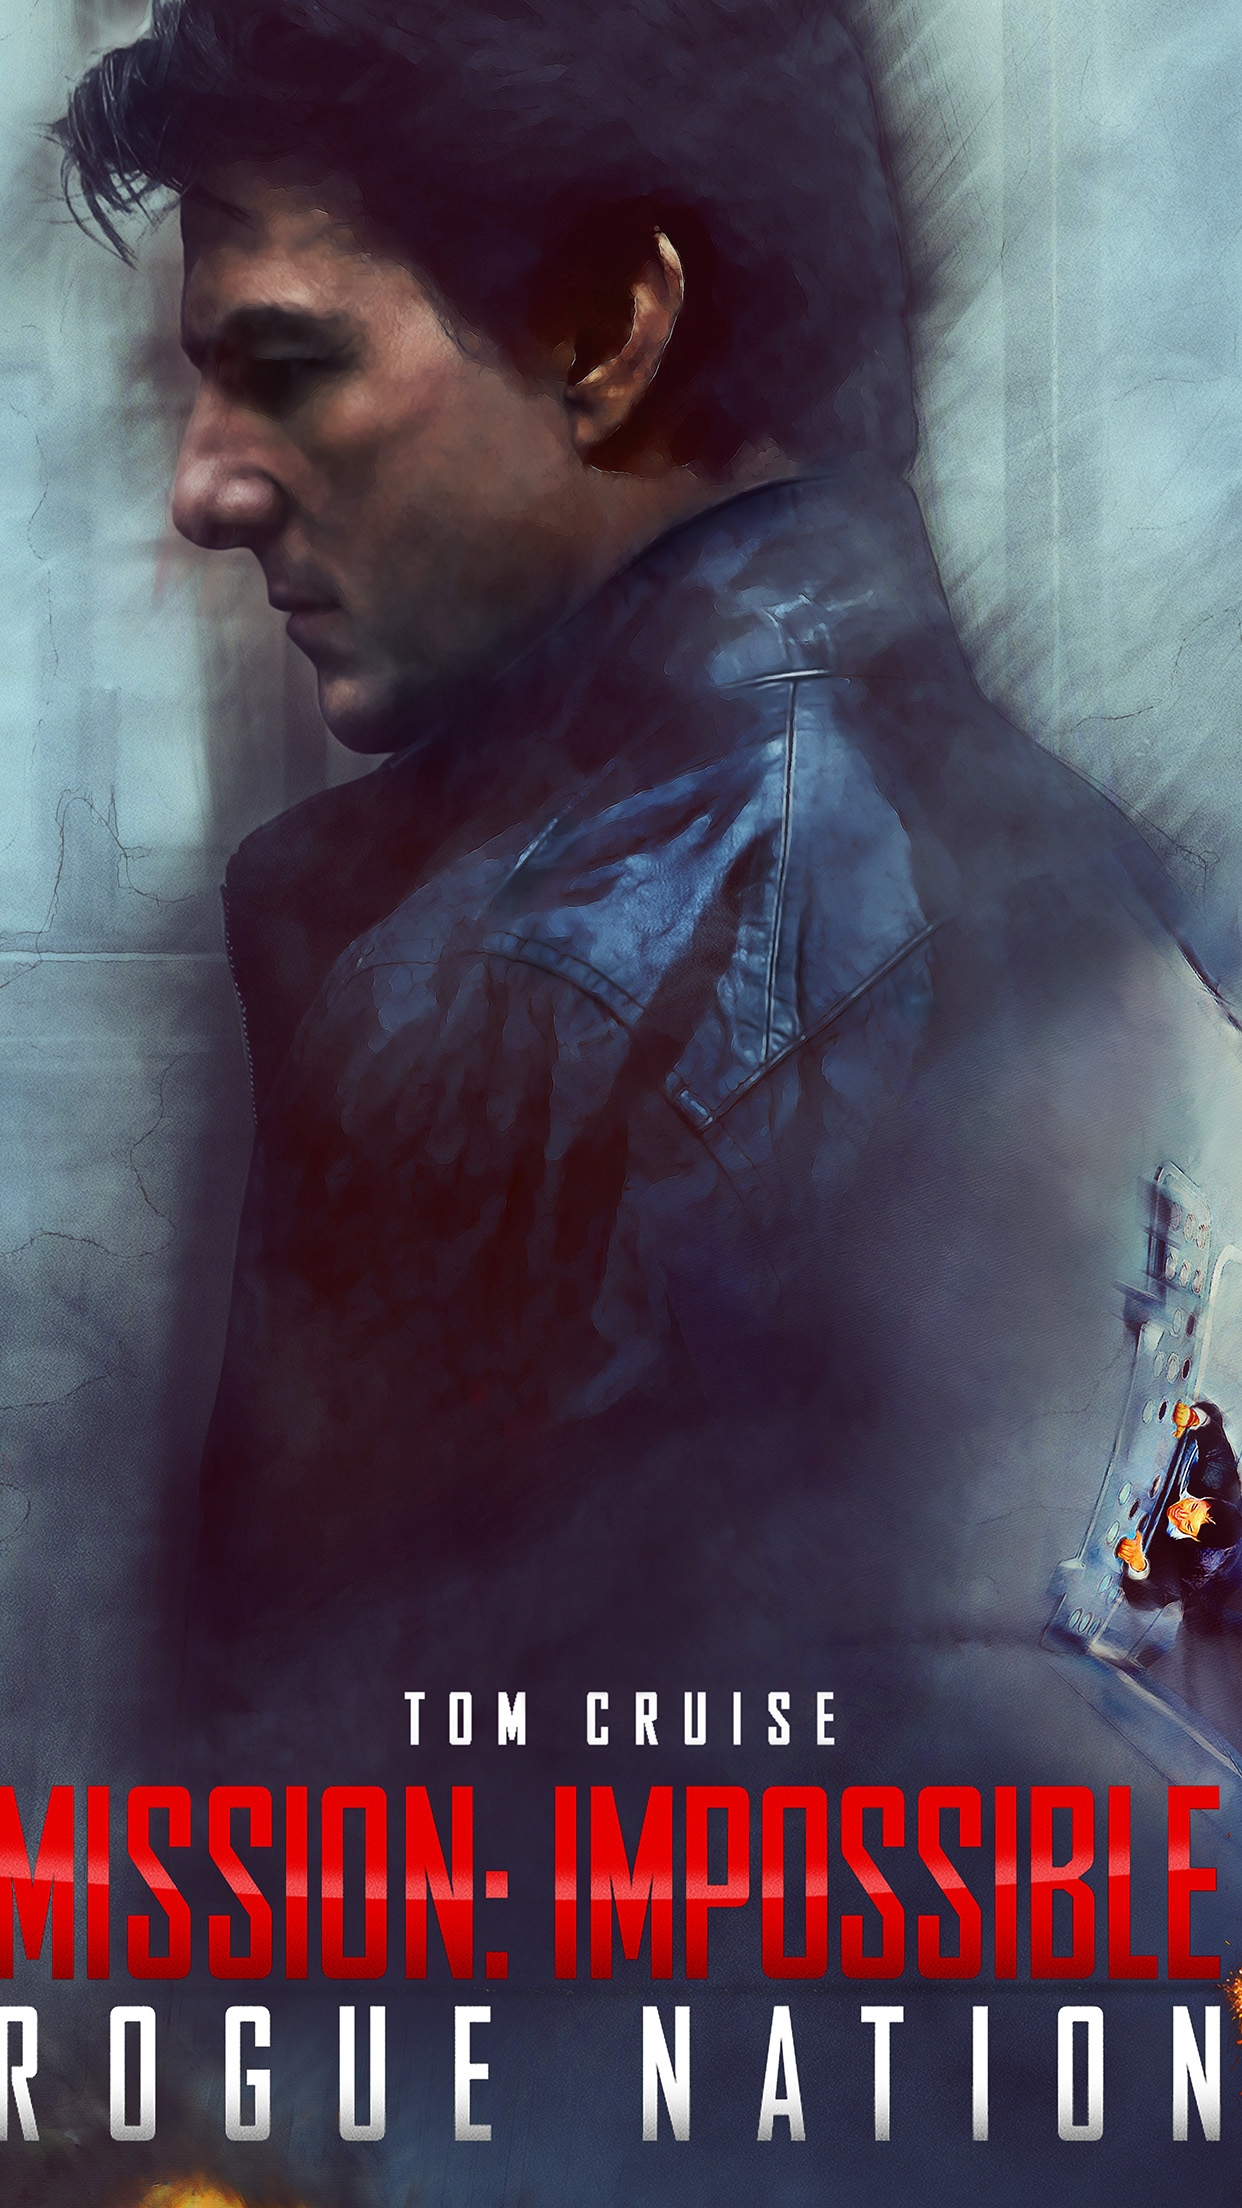 Tom Cruise Mission Impossible Rogue Film Poster Android wallpaper